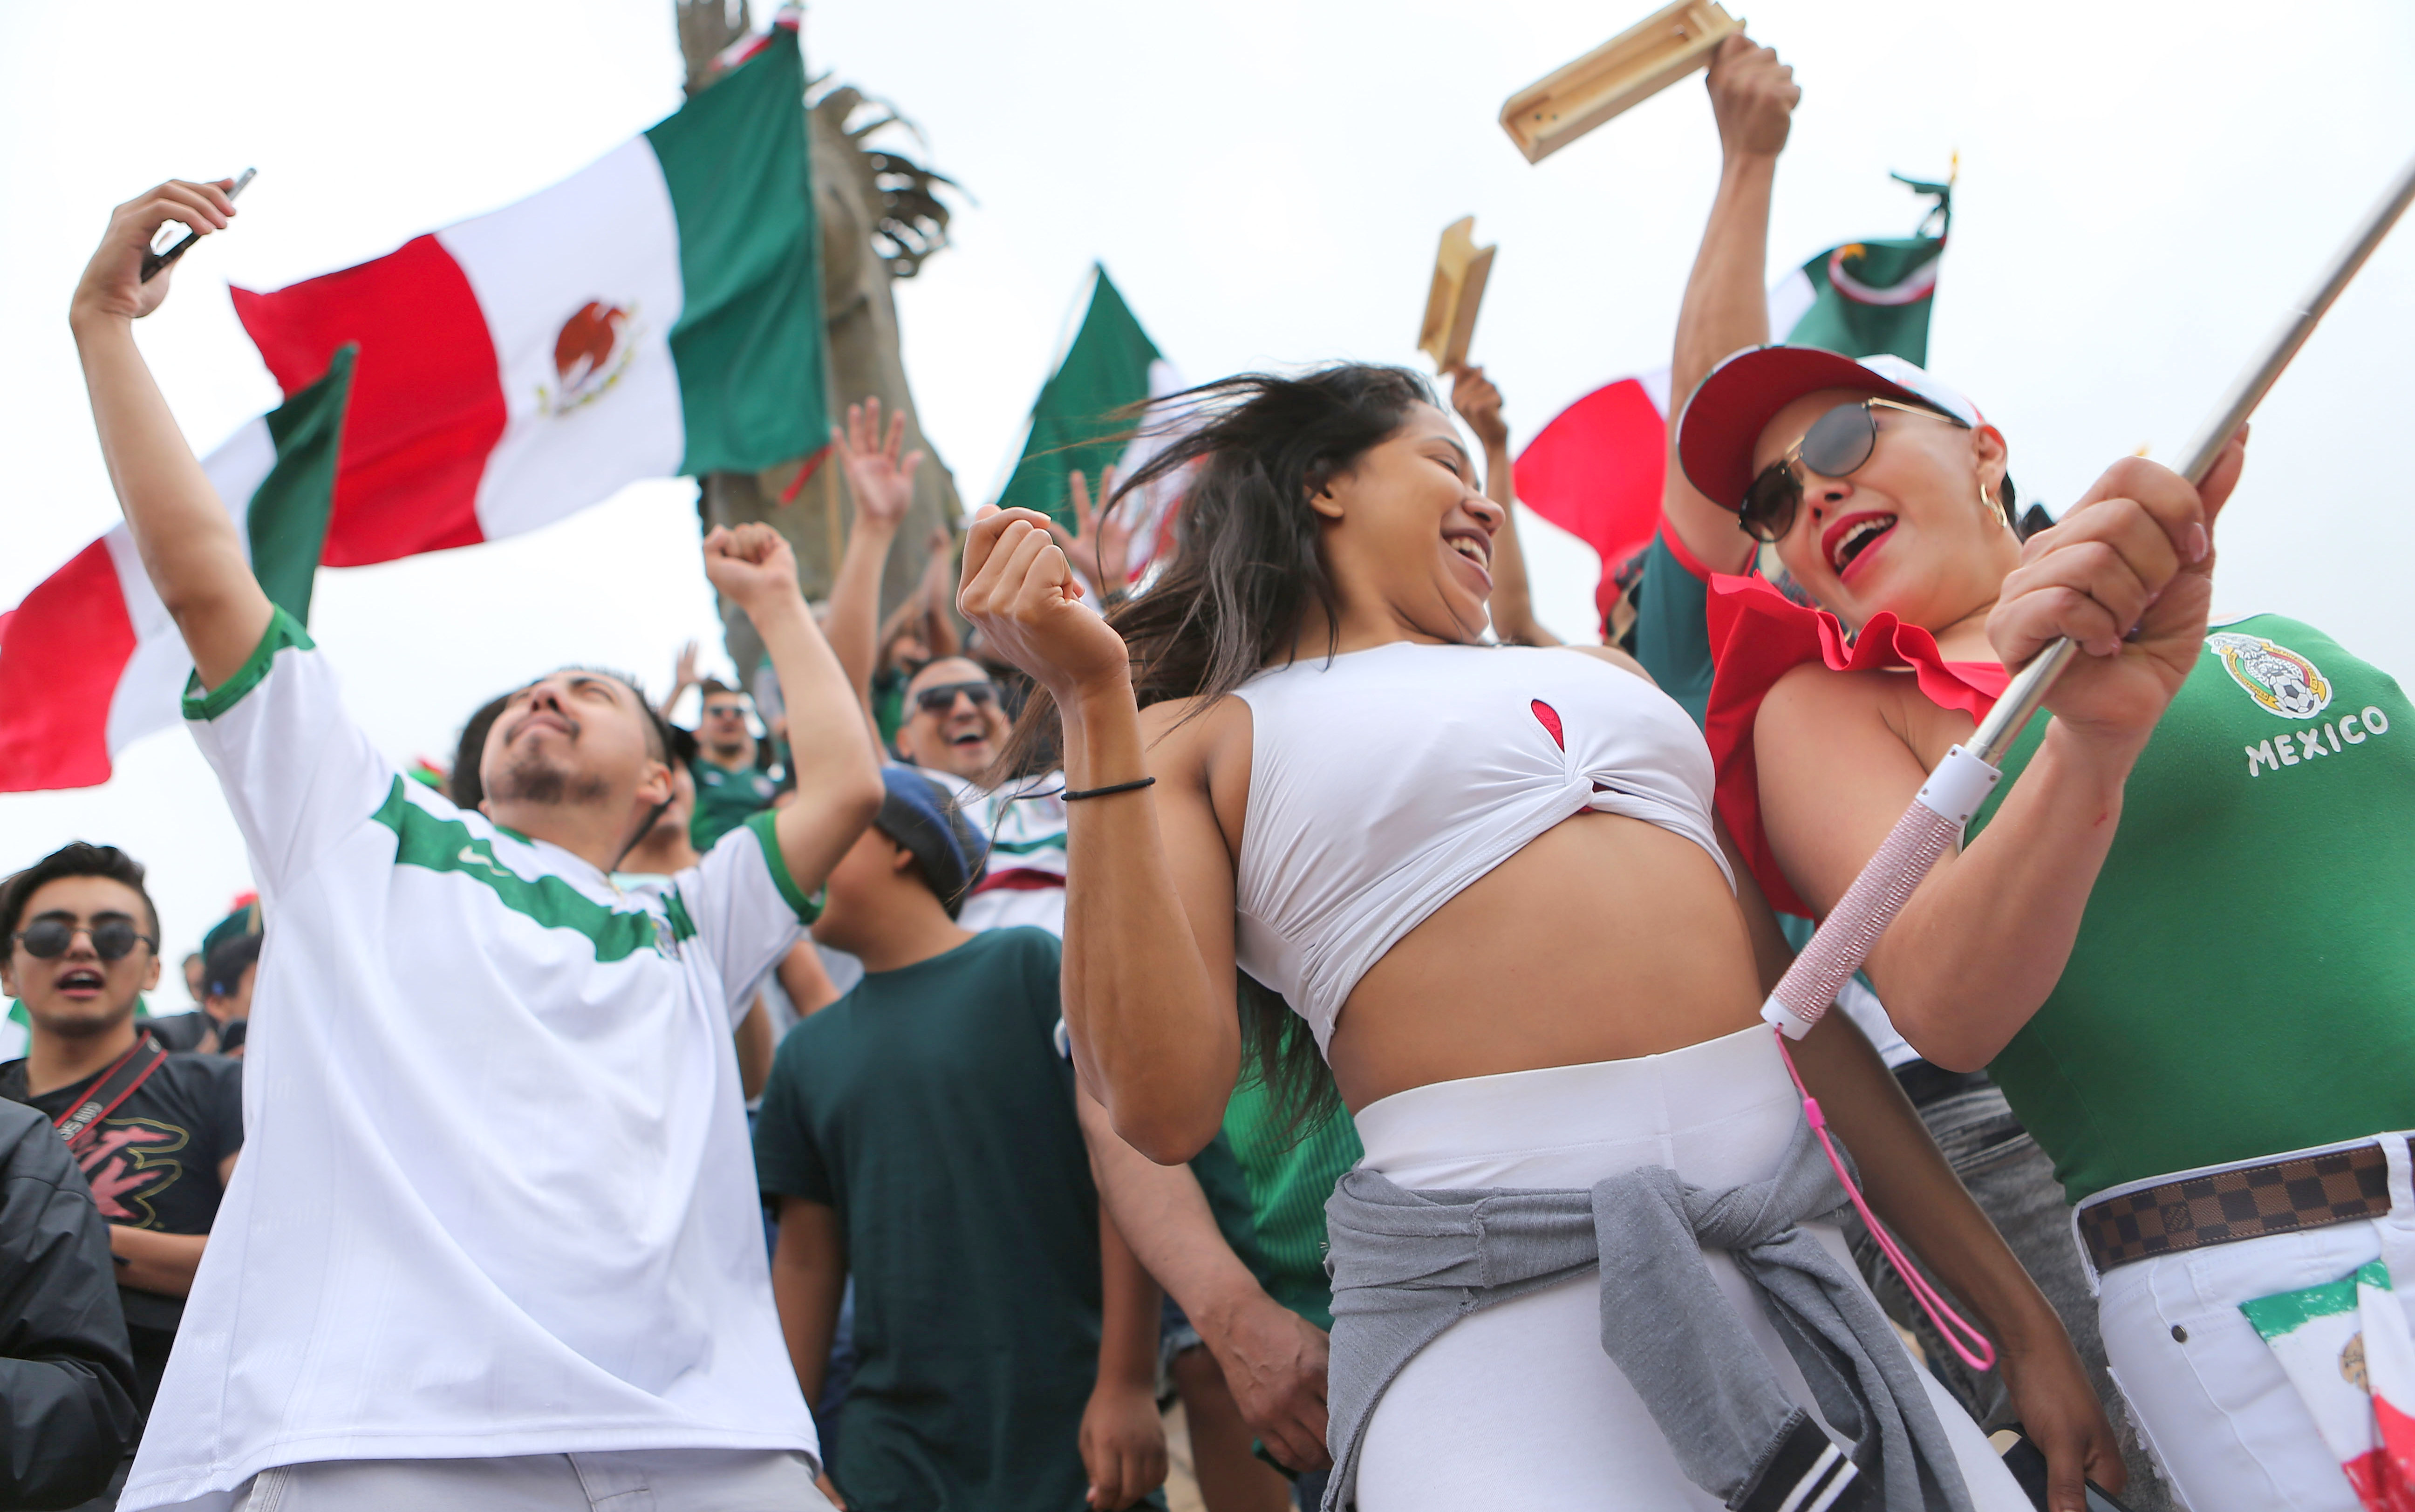 World Cup diary: Mexico fans wave gay pride flags in victory